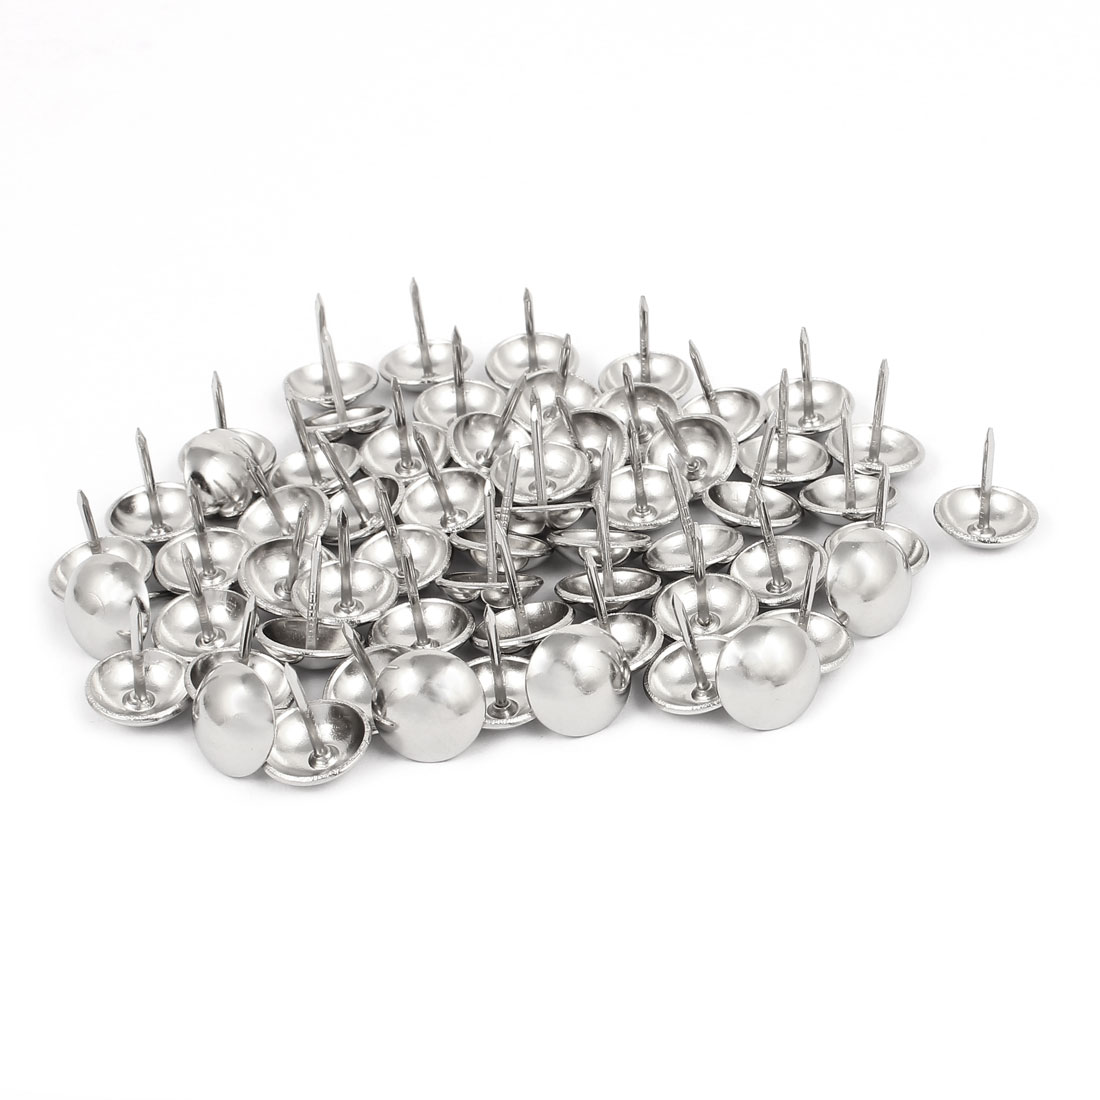 14mm Dia Stainless Steel Thumbtack Upholstery Decorative Tack Nail Pushpin 60PCS